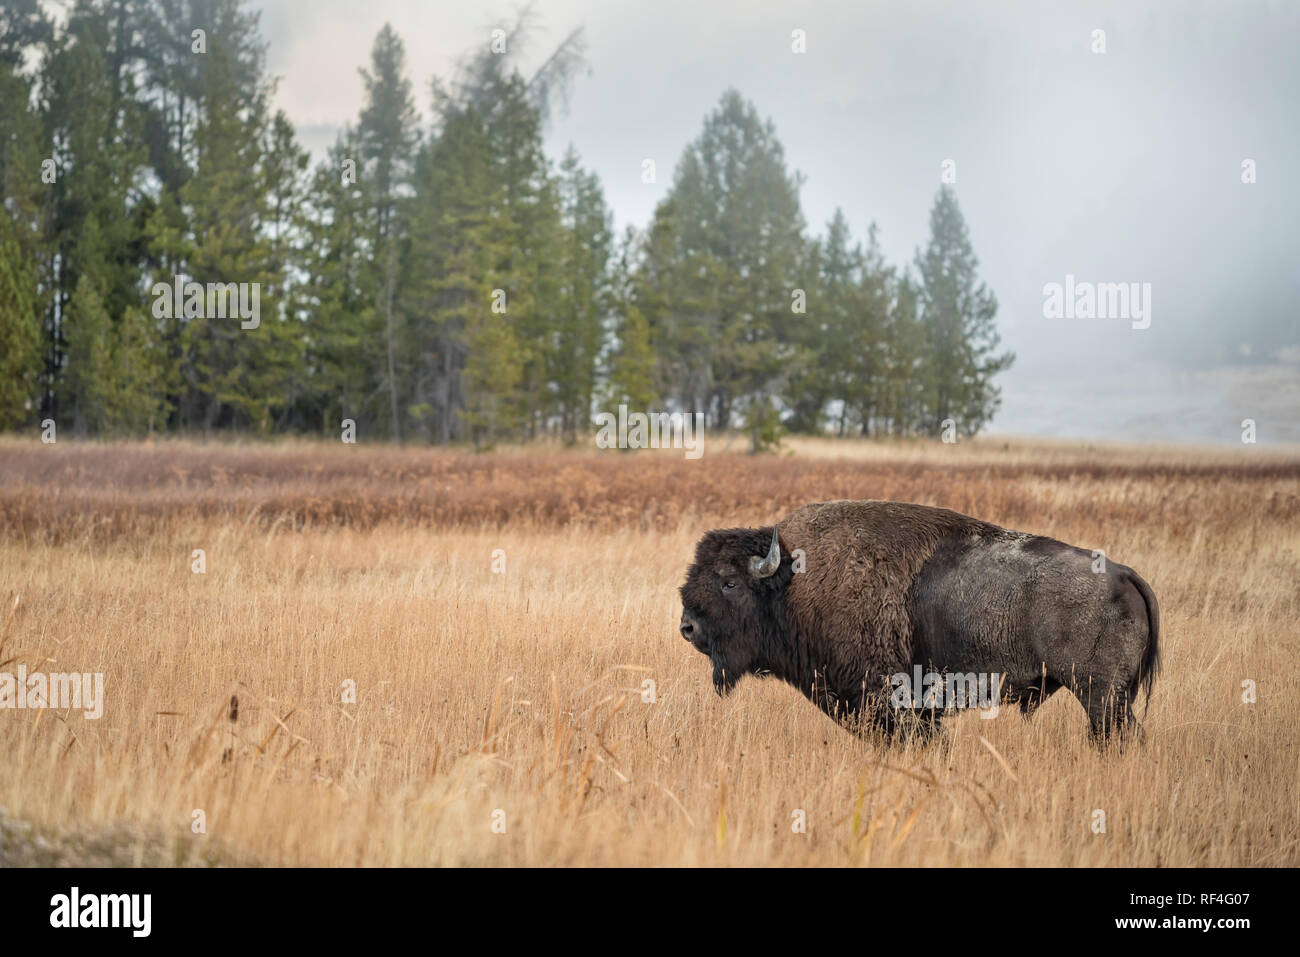 Bison At Upper Geyser Basin In Old Faithful Yellowstone